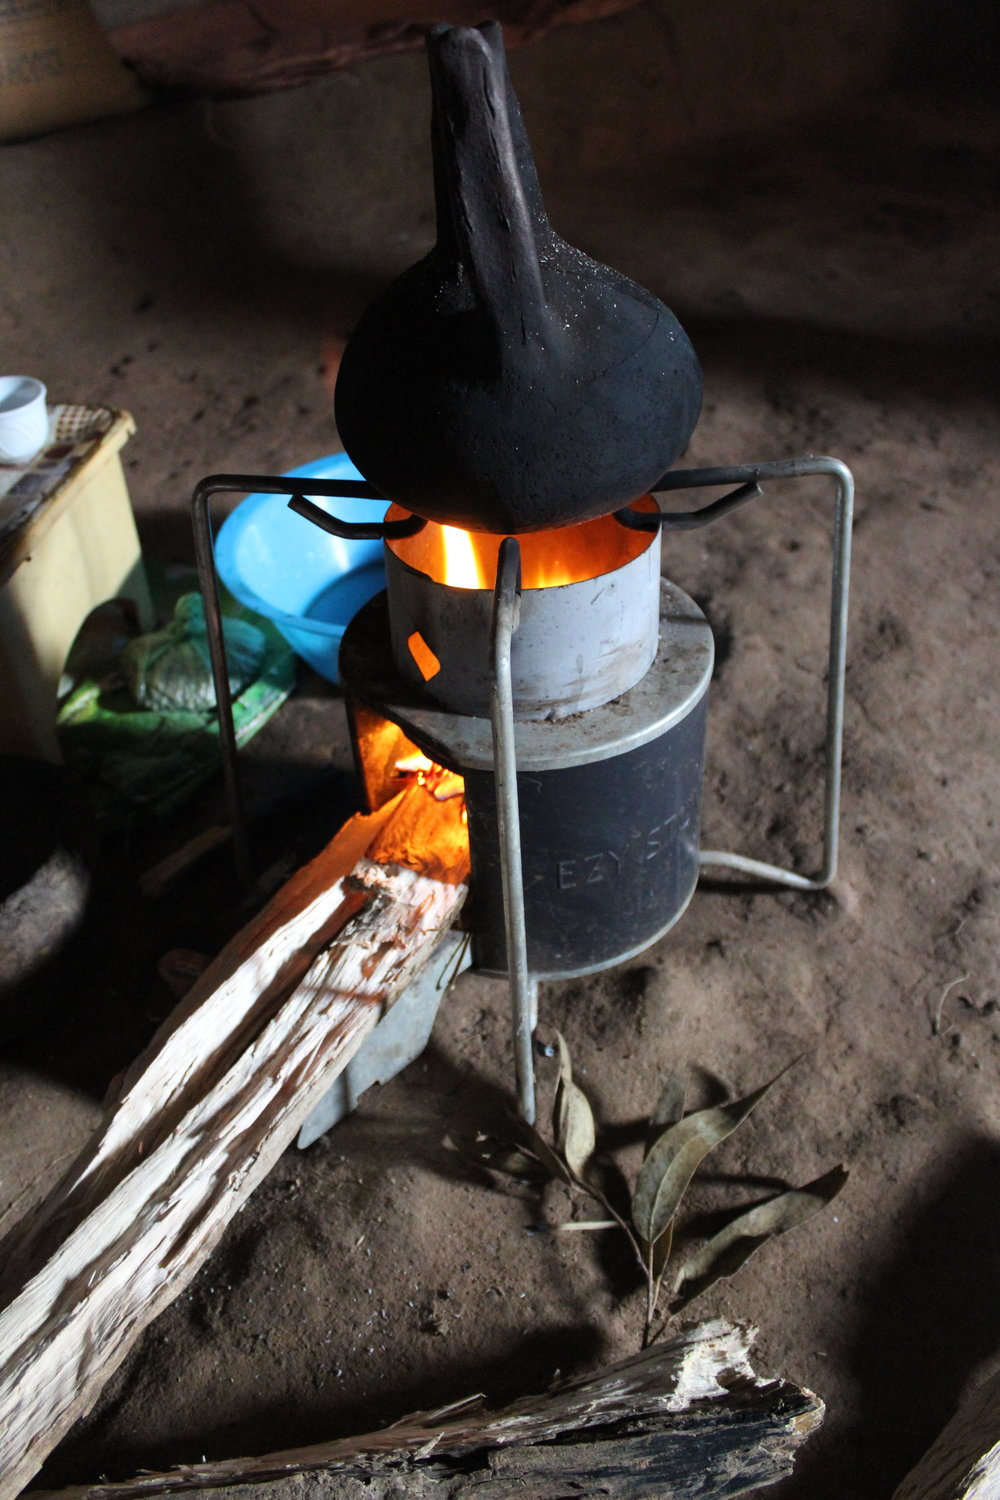 The EzyStove, locally manufactured in Mekelle, Ethiopia.